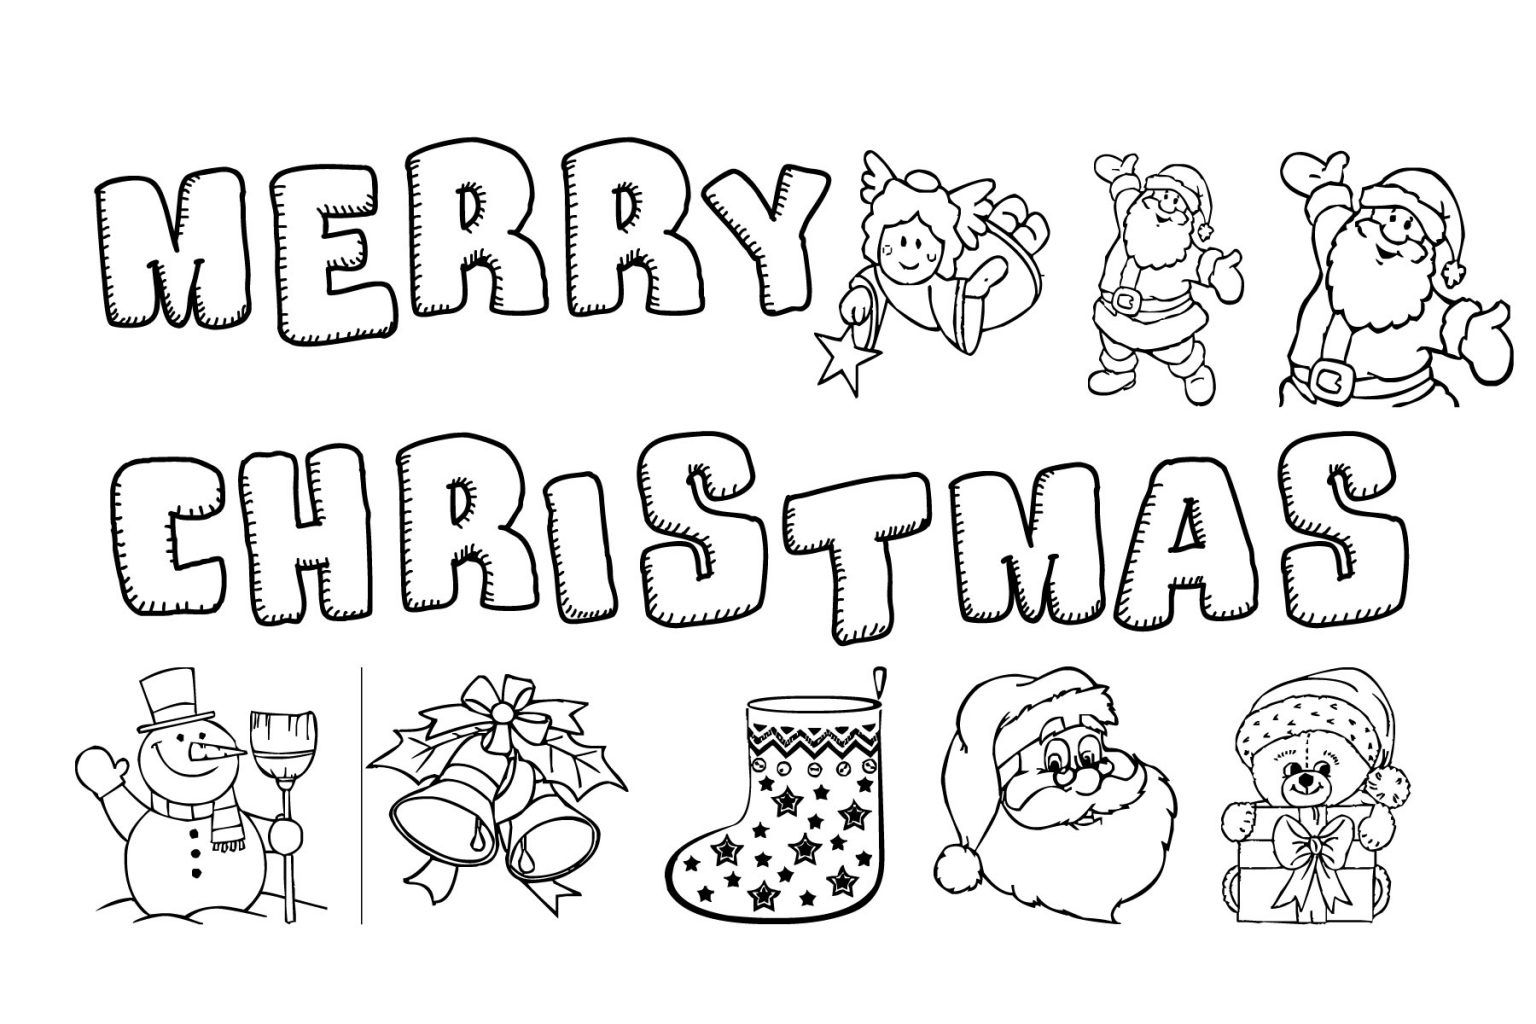 Free Printable Christmas Coloring Pages For Kids More Than A Mom Of Three Printable Christmas Coloring Pages Merry Christmas Coloring Pages Christmas Coloring Pages